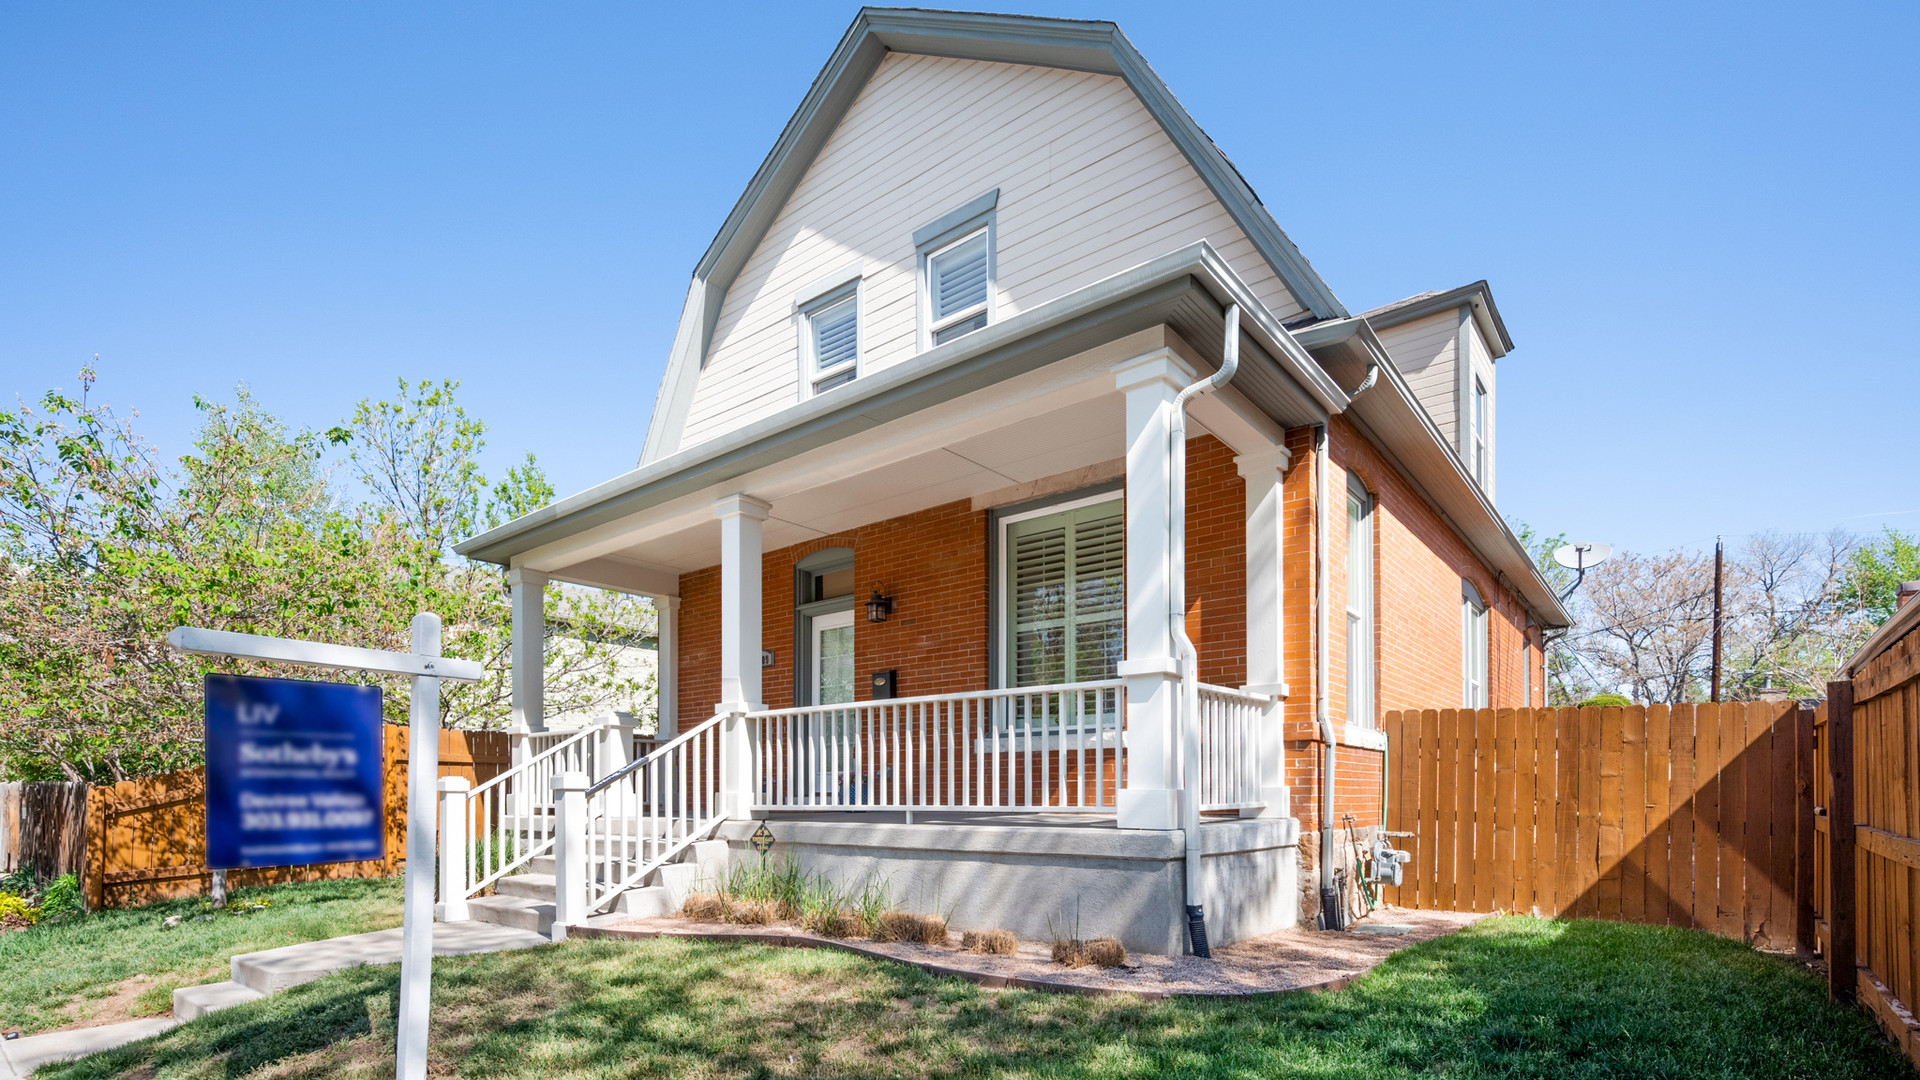 3409 W Moncrieff Place Denver, CO3409 W Moncrieff Place Denver, CO